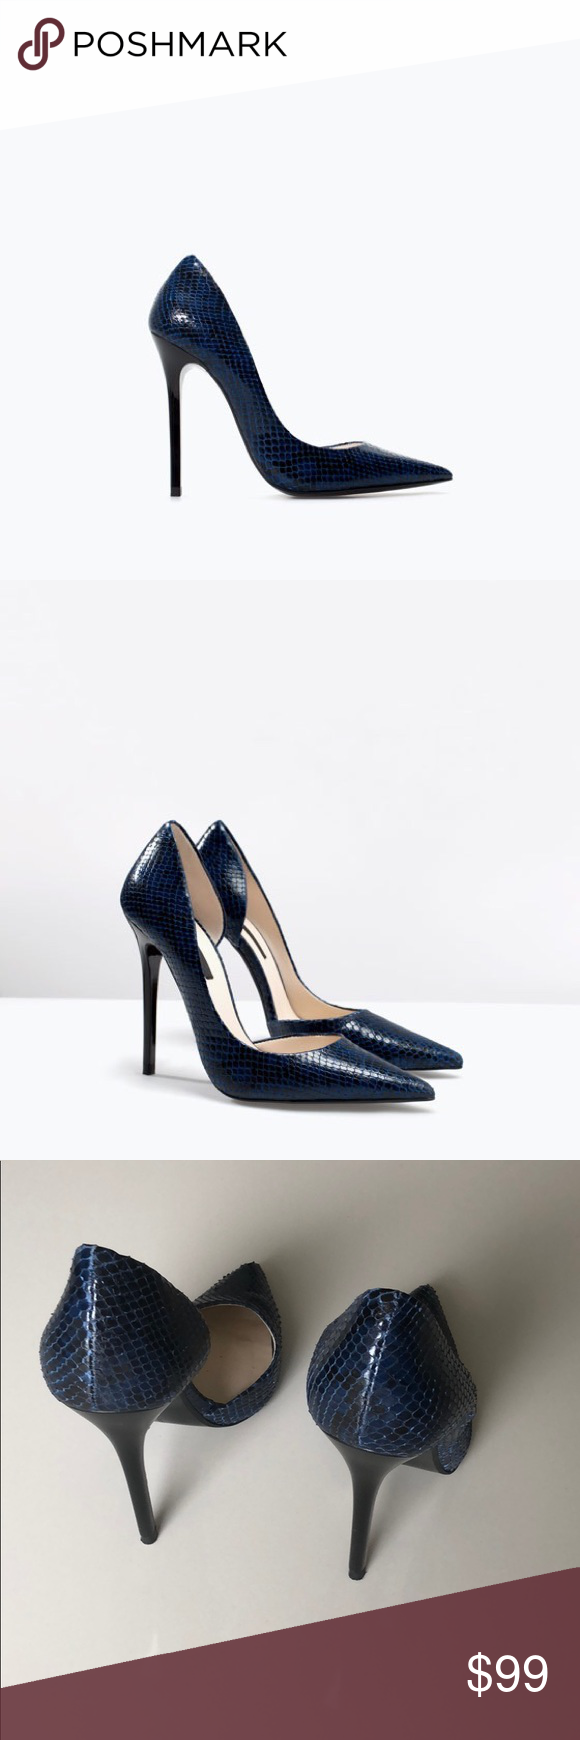 41cd10c7075 Zara leather navy black pumps Great looking leather pumps by Zara. Worn 2  times. Great condition. Size 38 (fits 8-8.5) Original price  139+tax Zara  Shoes ...